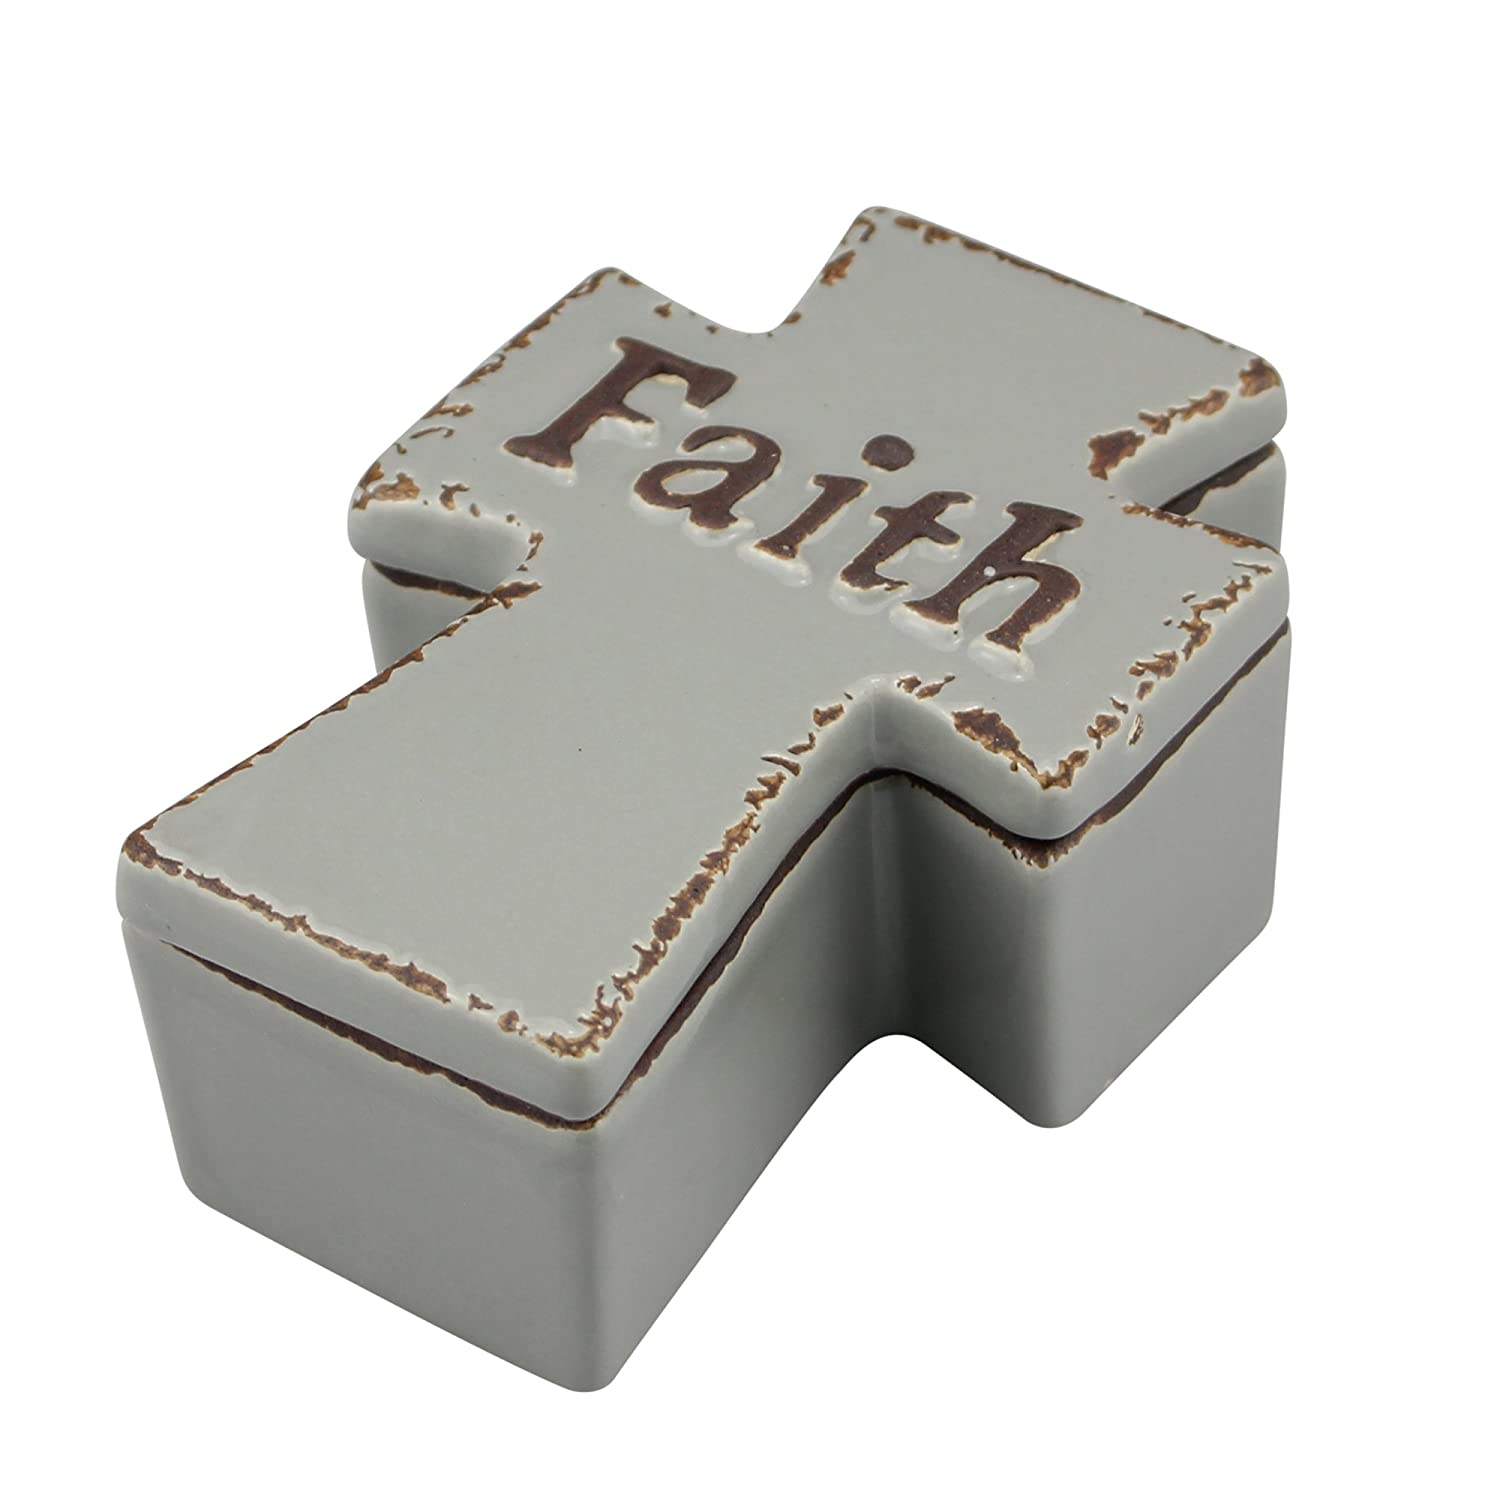 Stonebriar Ceramic Cross Shape Keepsake Trinket Box, Unique Rosary and Jewelry Holder, Religious Gift Ideas for Birthdays, Christmas, Weddings, Engagements, and First Communion CKK Home Décor SB-6110A